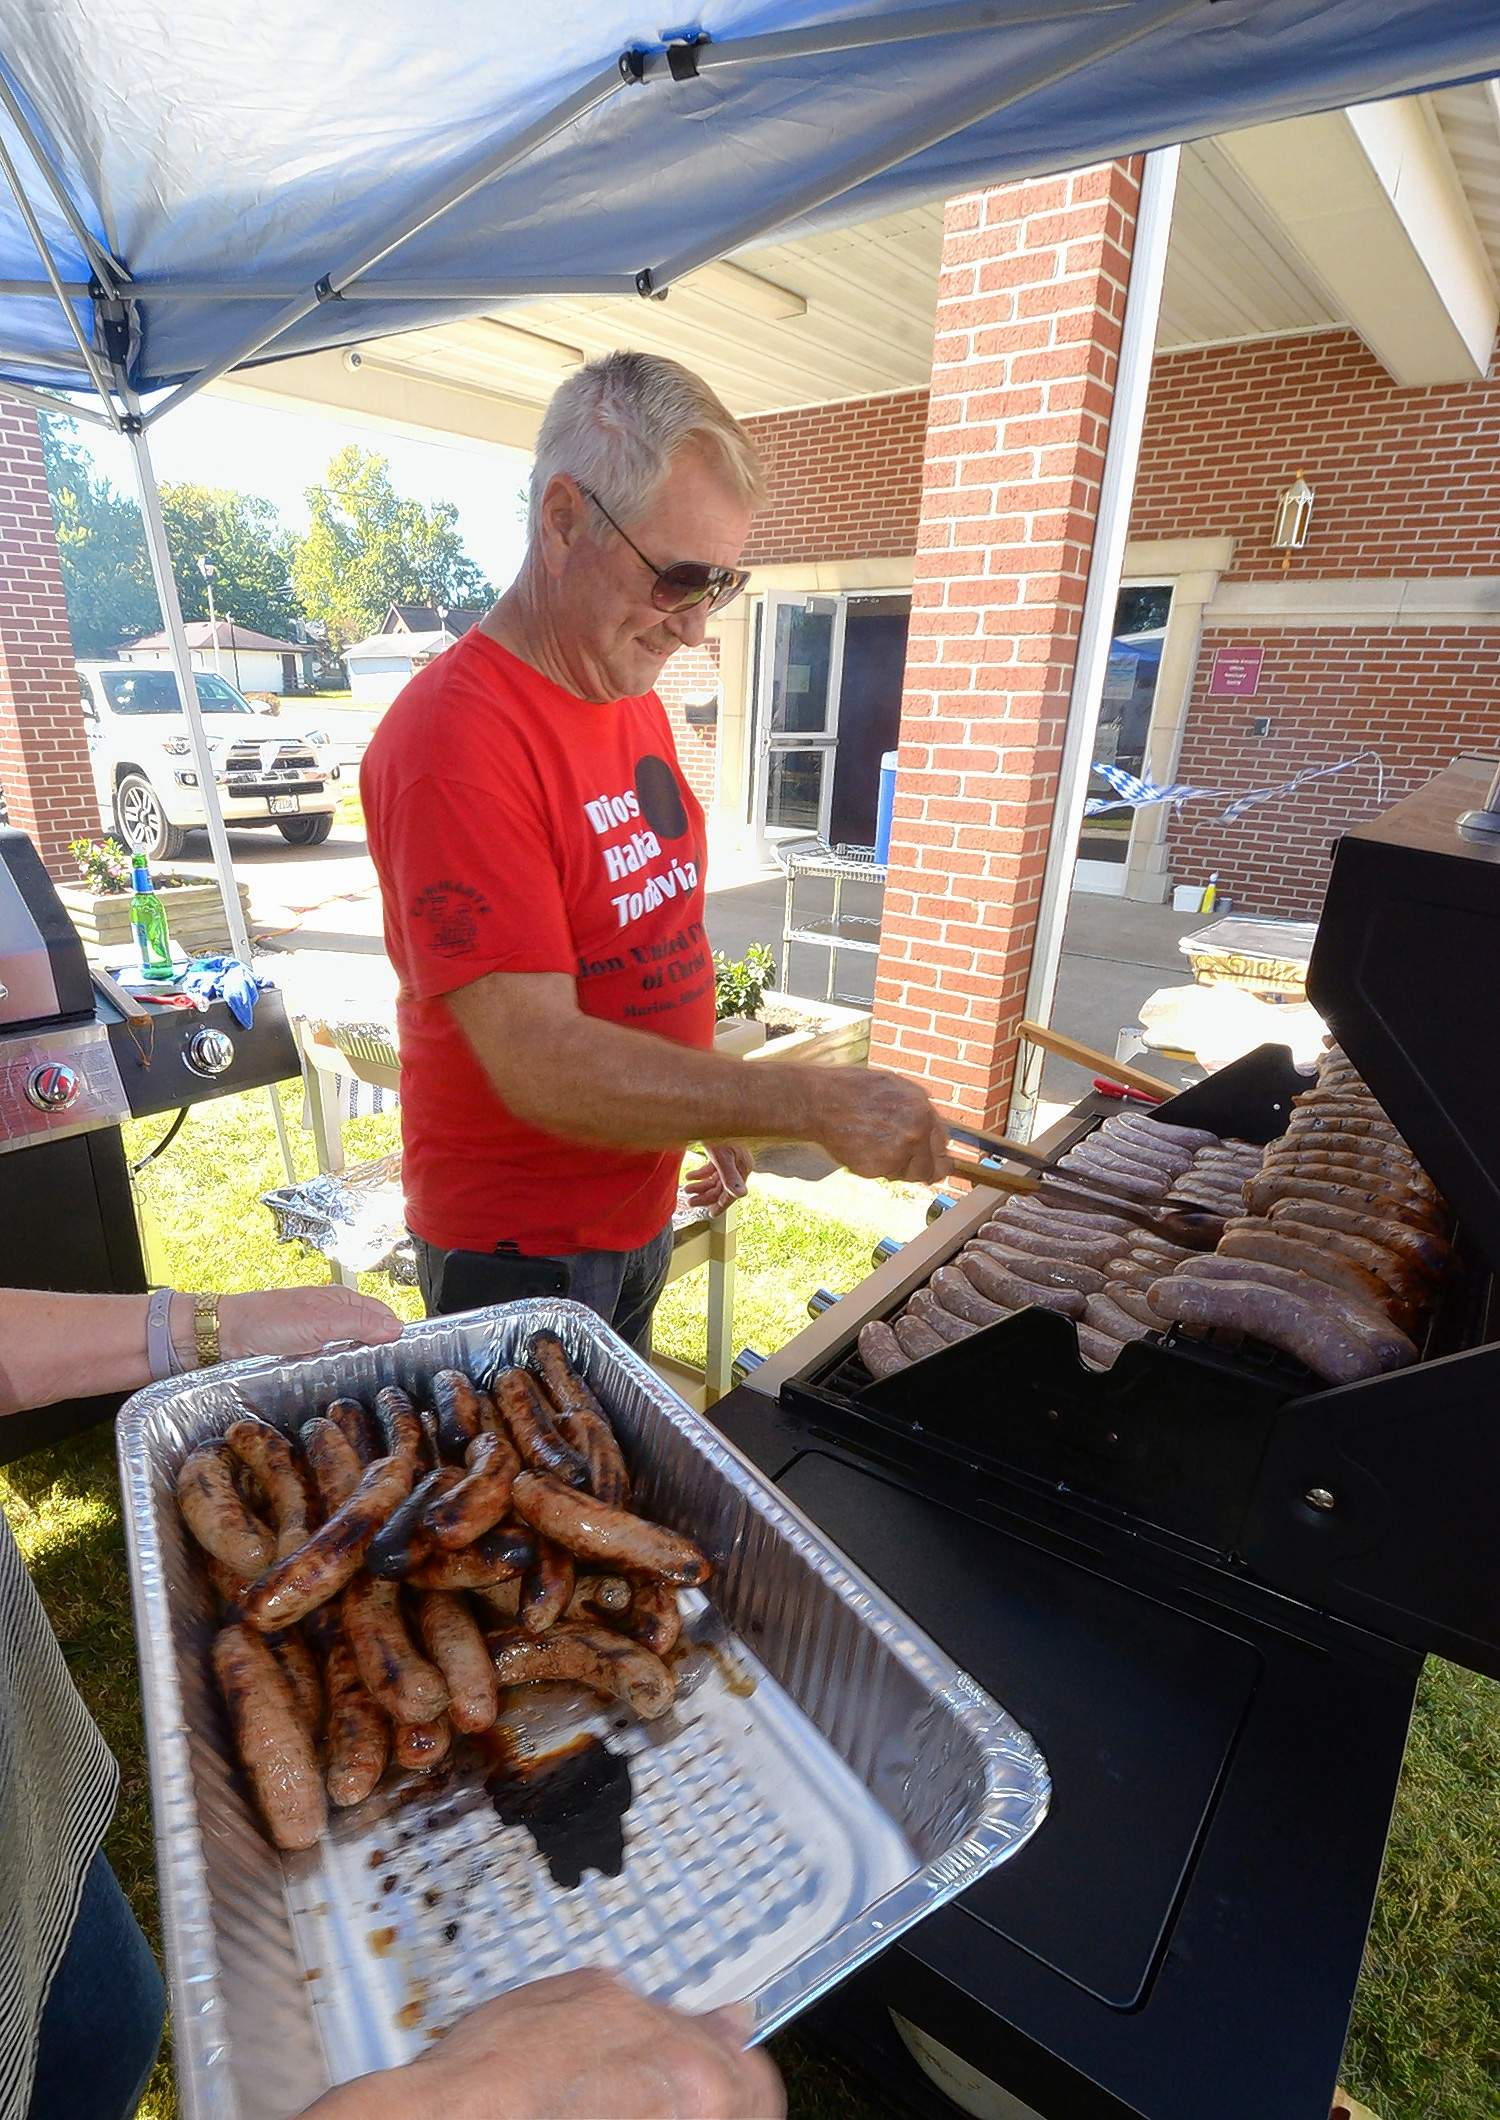 Church member Gene Ruehmkorff was busy at the grill Saturday cooking applewurst sausages for the hundreds of hungry guests in attendance at Zion United Church of Christ's second annual Oktoberfest.